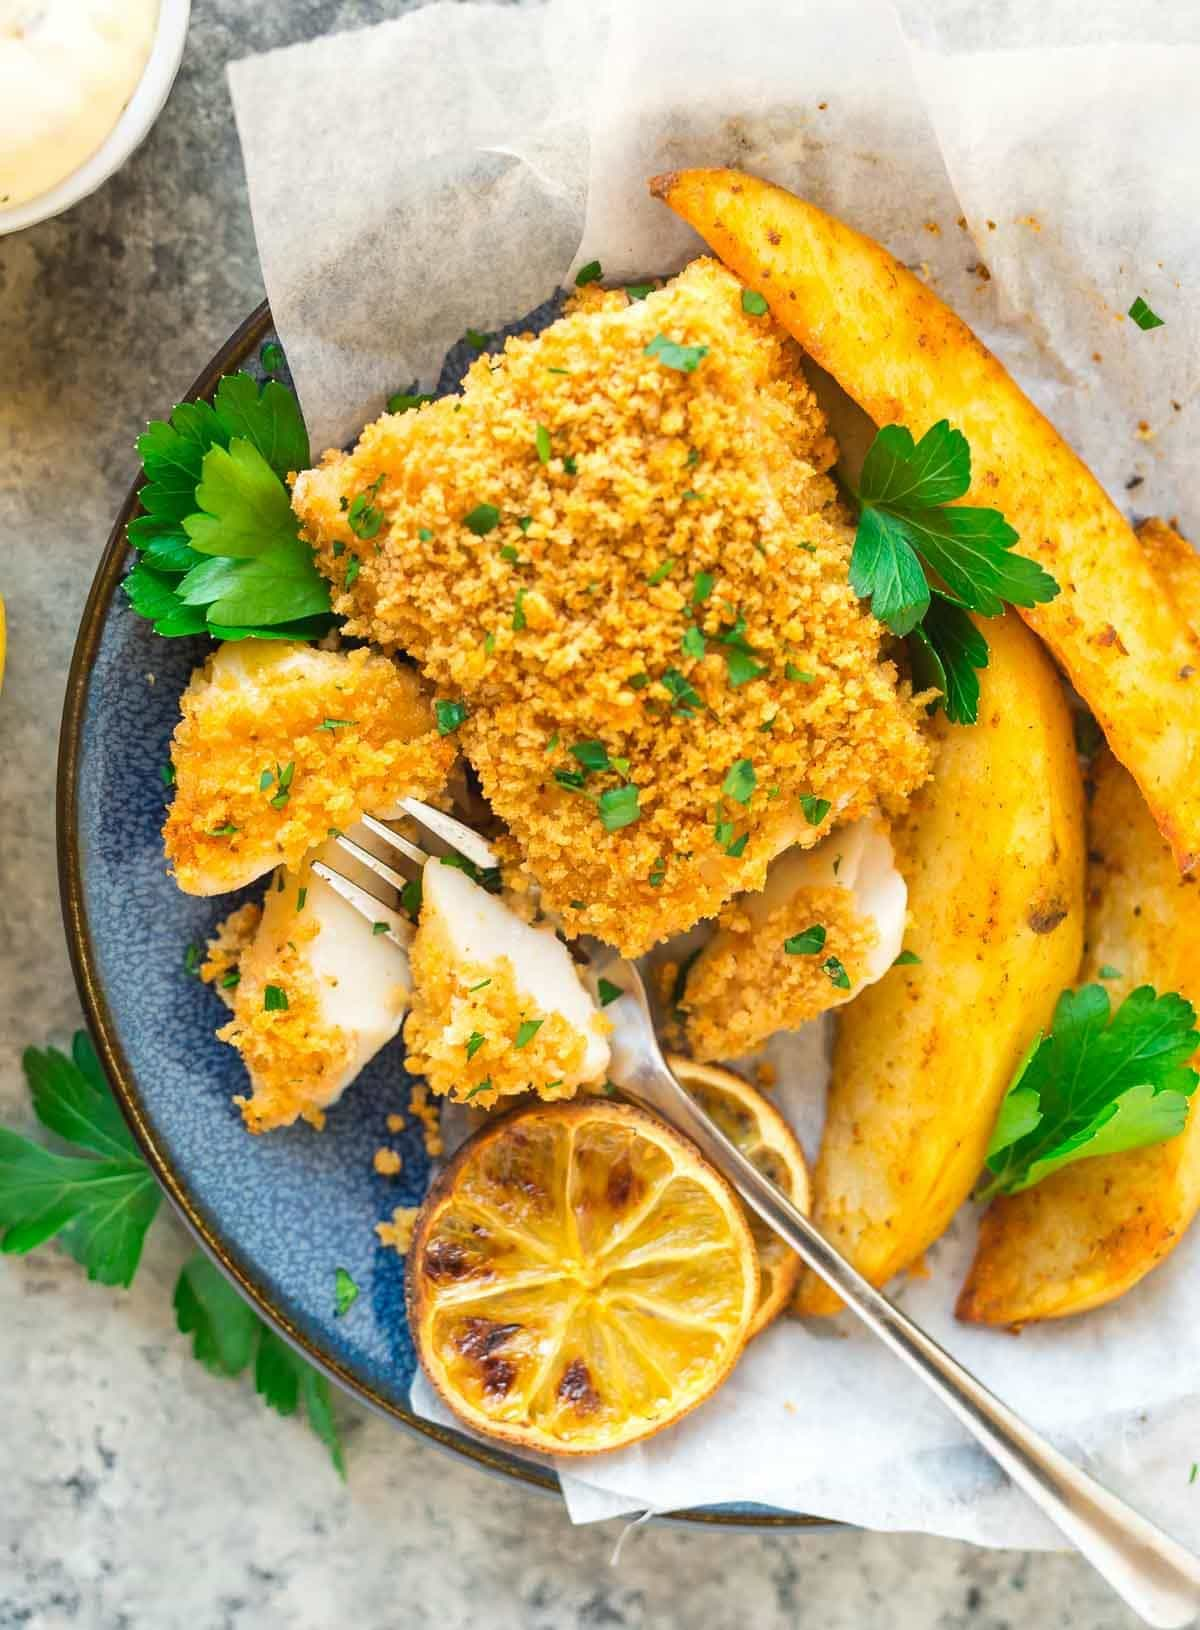 Baked fish and chips in a bowl